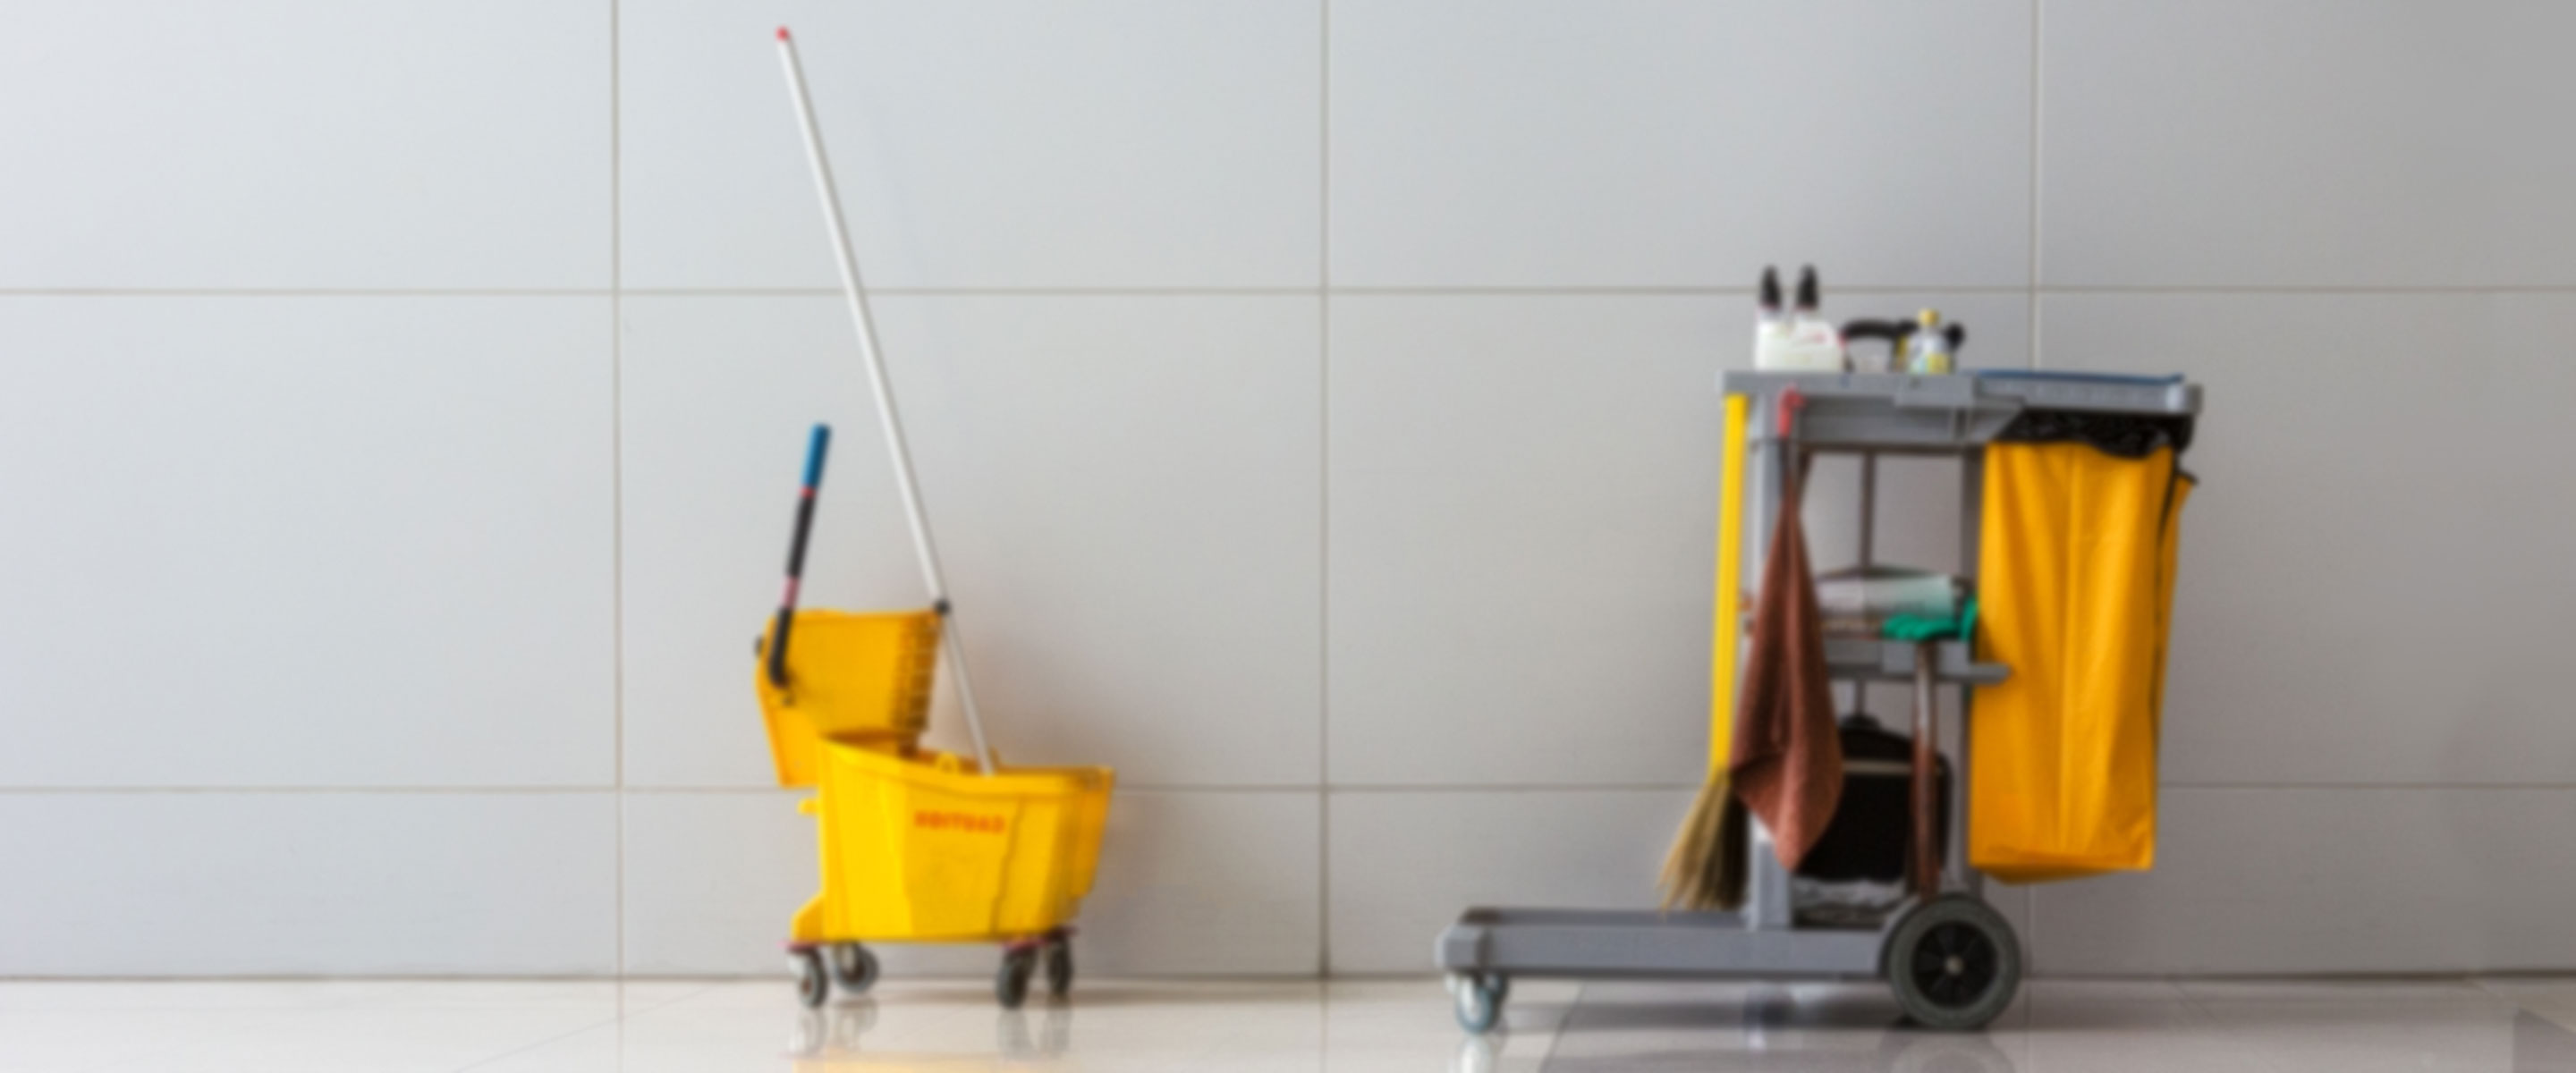 Ultimate Safety Tips for Commercial Cleaning - Bright Academy